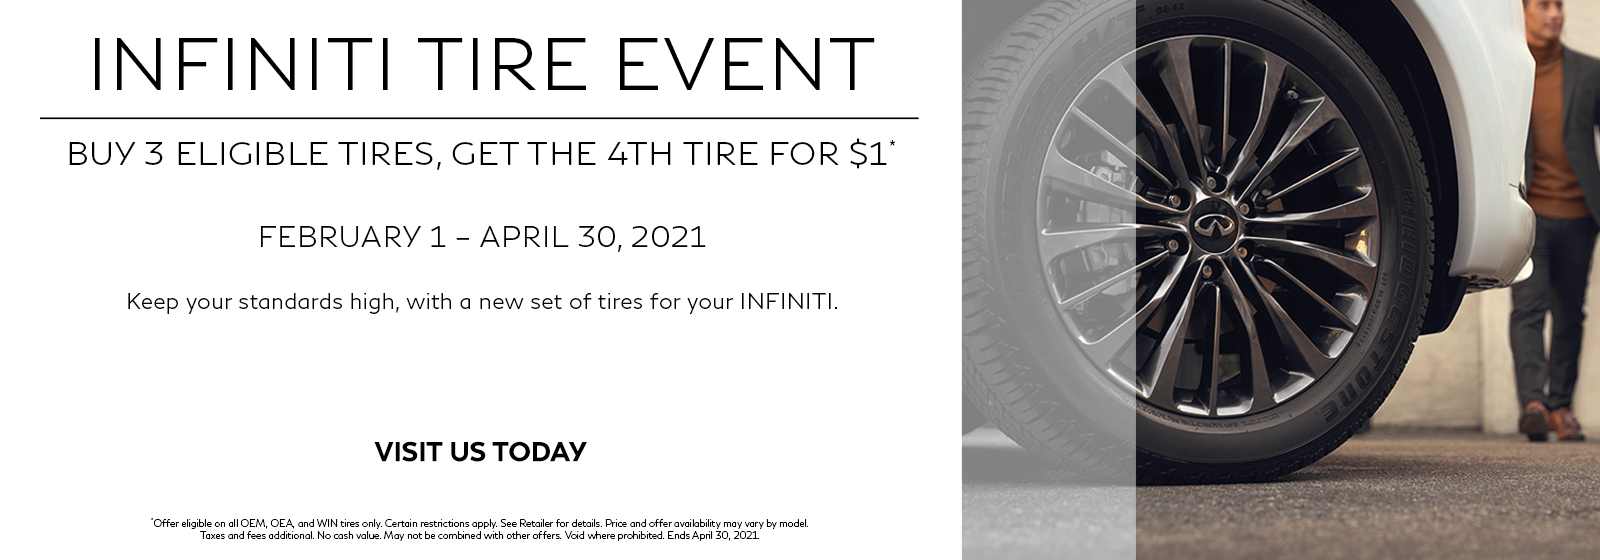 : INFINITI Tire Event. Buy 3 eligible tires, get the 4th tire for $1. February 1 – April 30, 2021. Keep your standards high with a new set of tires for your INFINITI. Click to shop tires.